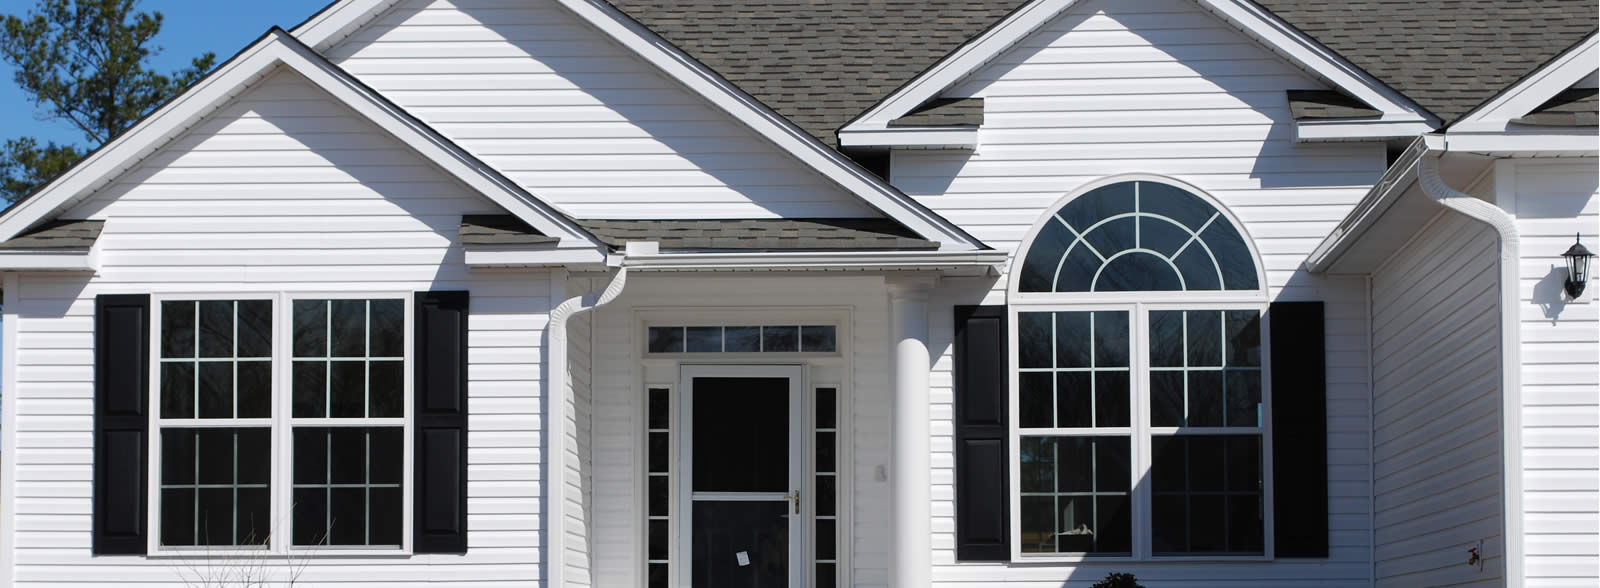 Superior Exterior Home Improvement Services. From Vinyl Siding In Greensboro,  NC To Roof Repair ...